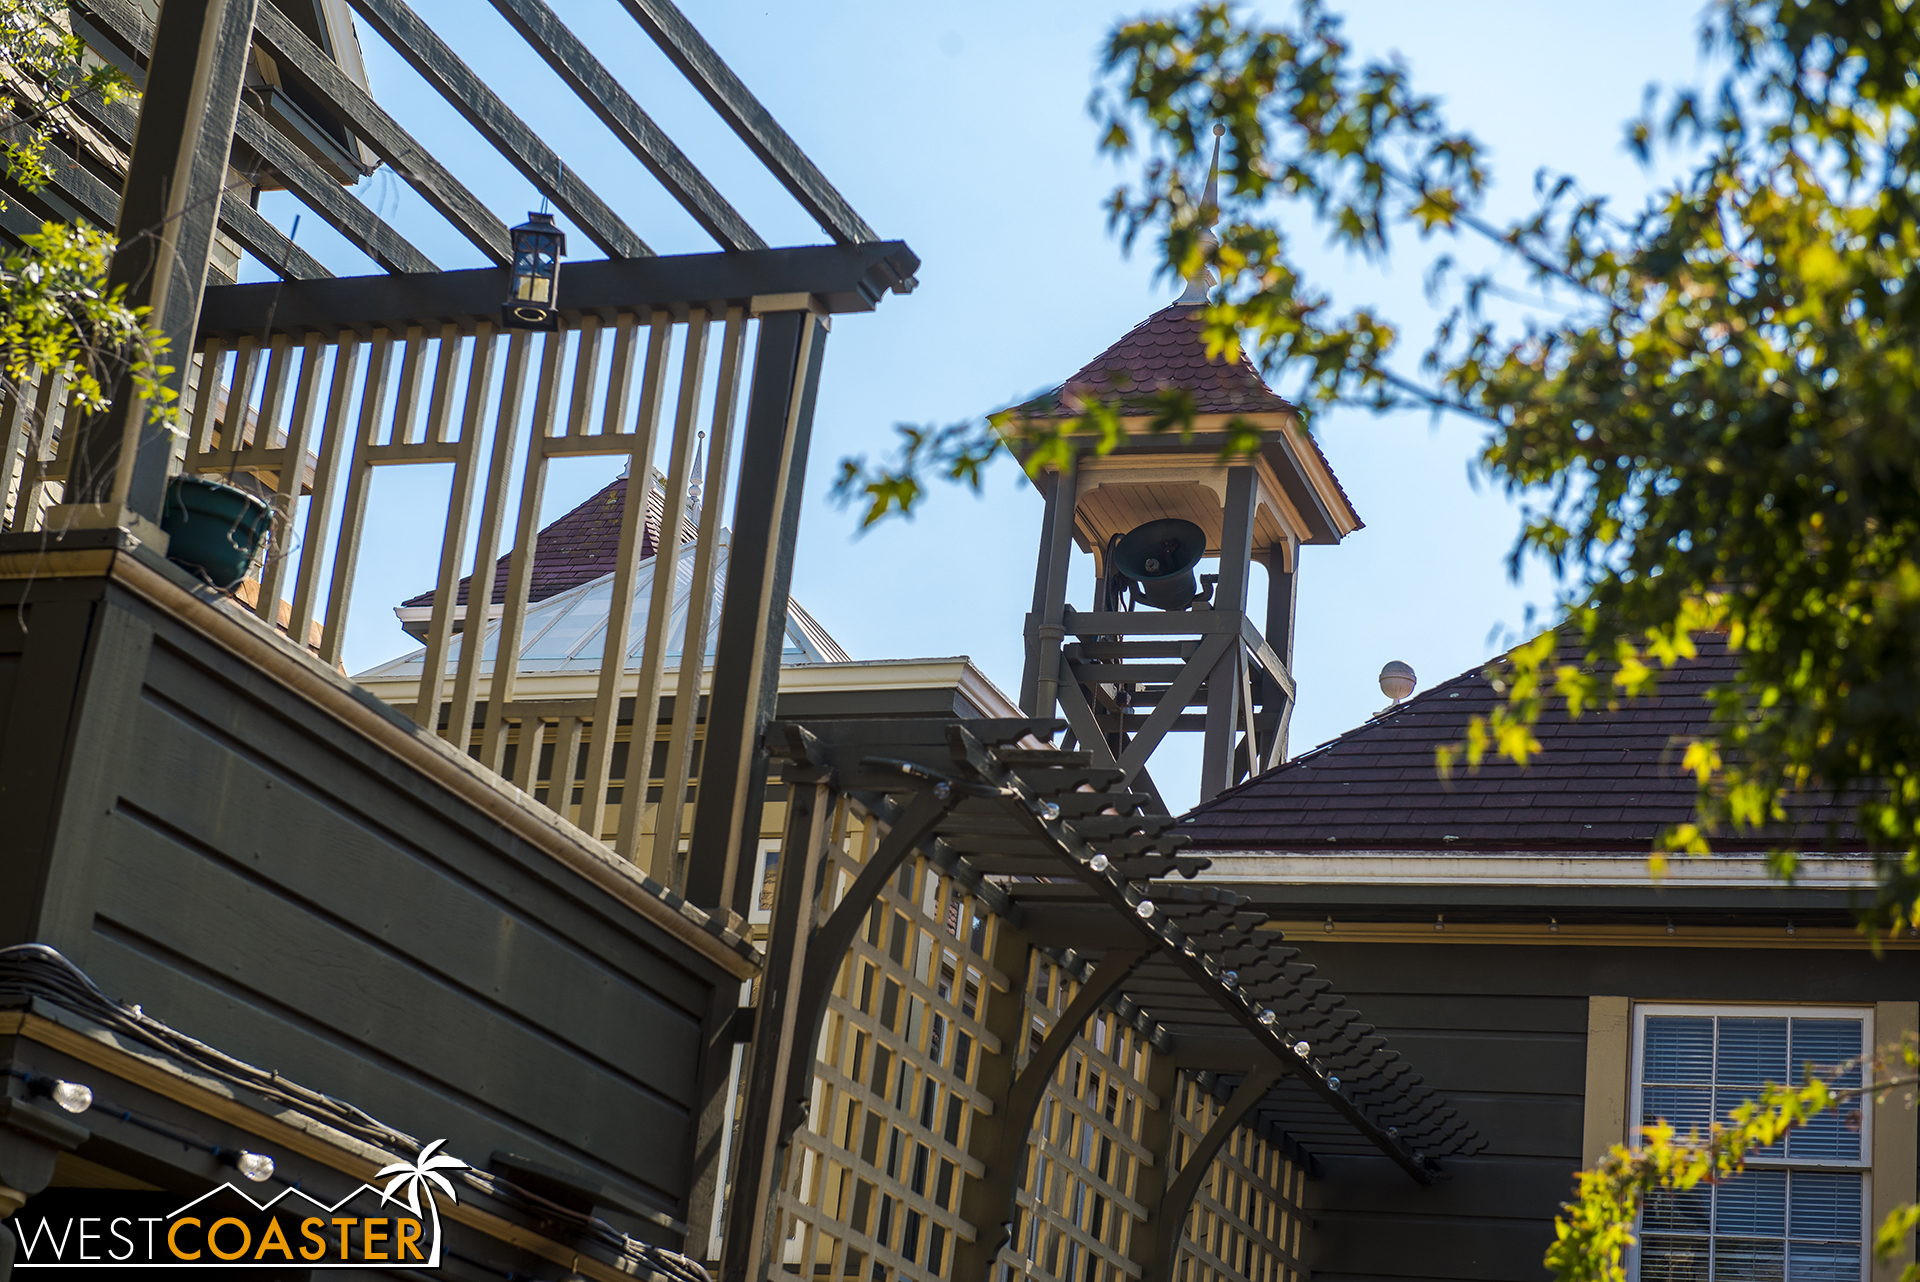 This past Friday the 13th, Winchester Mystery House celebrated a tradition done only on Friday the 13th's... the ringing of the bell tower 13 times at 13:00.